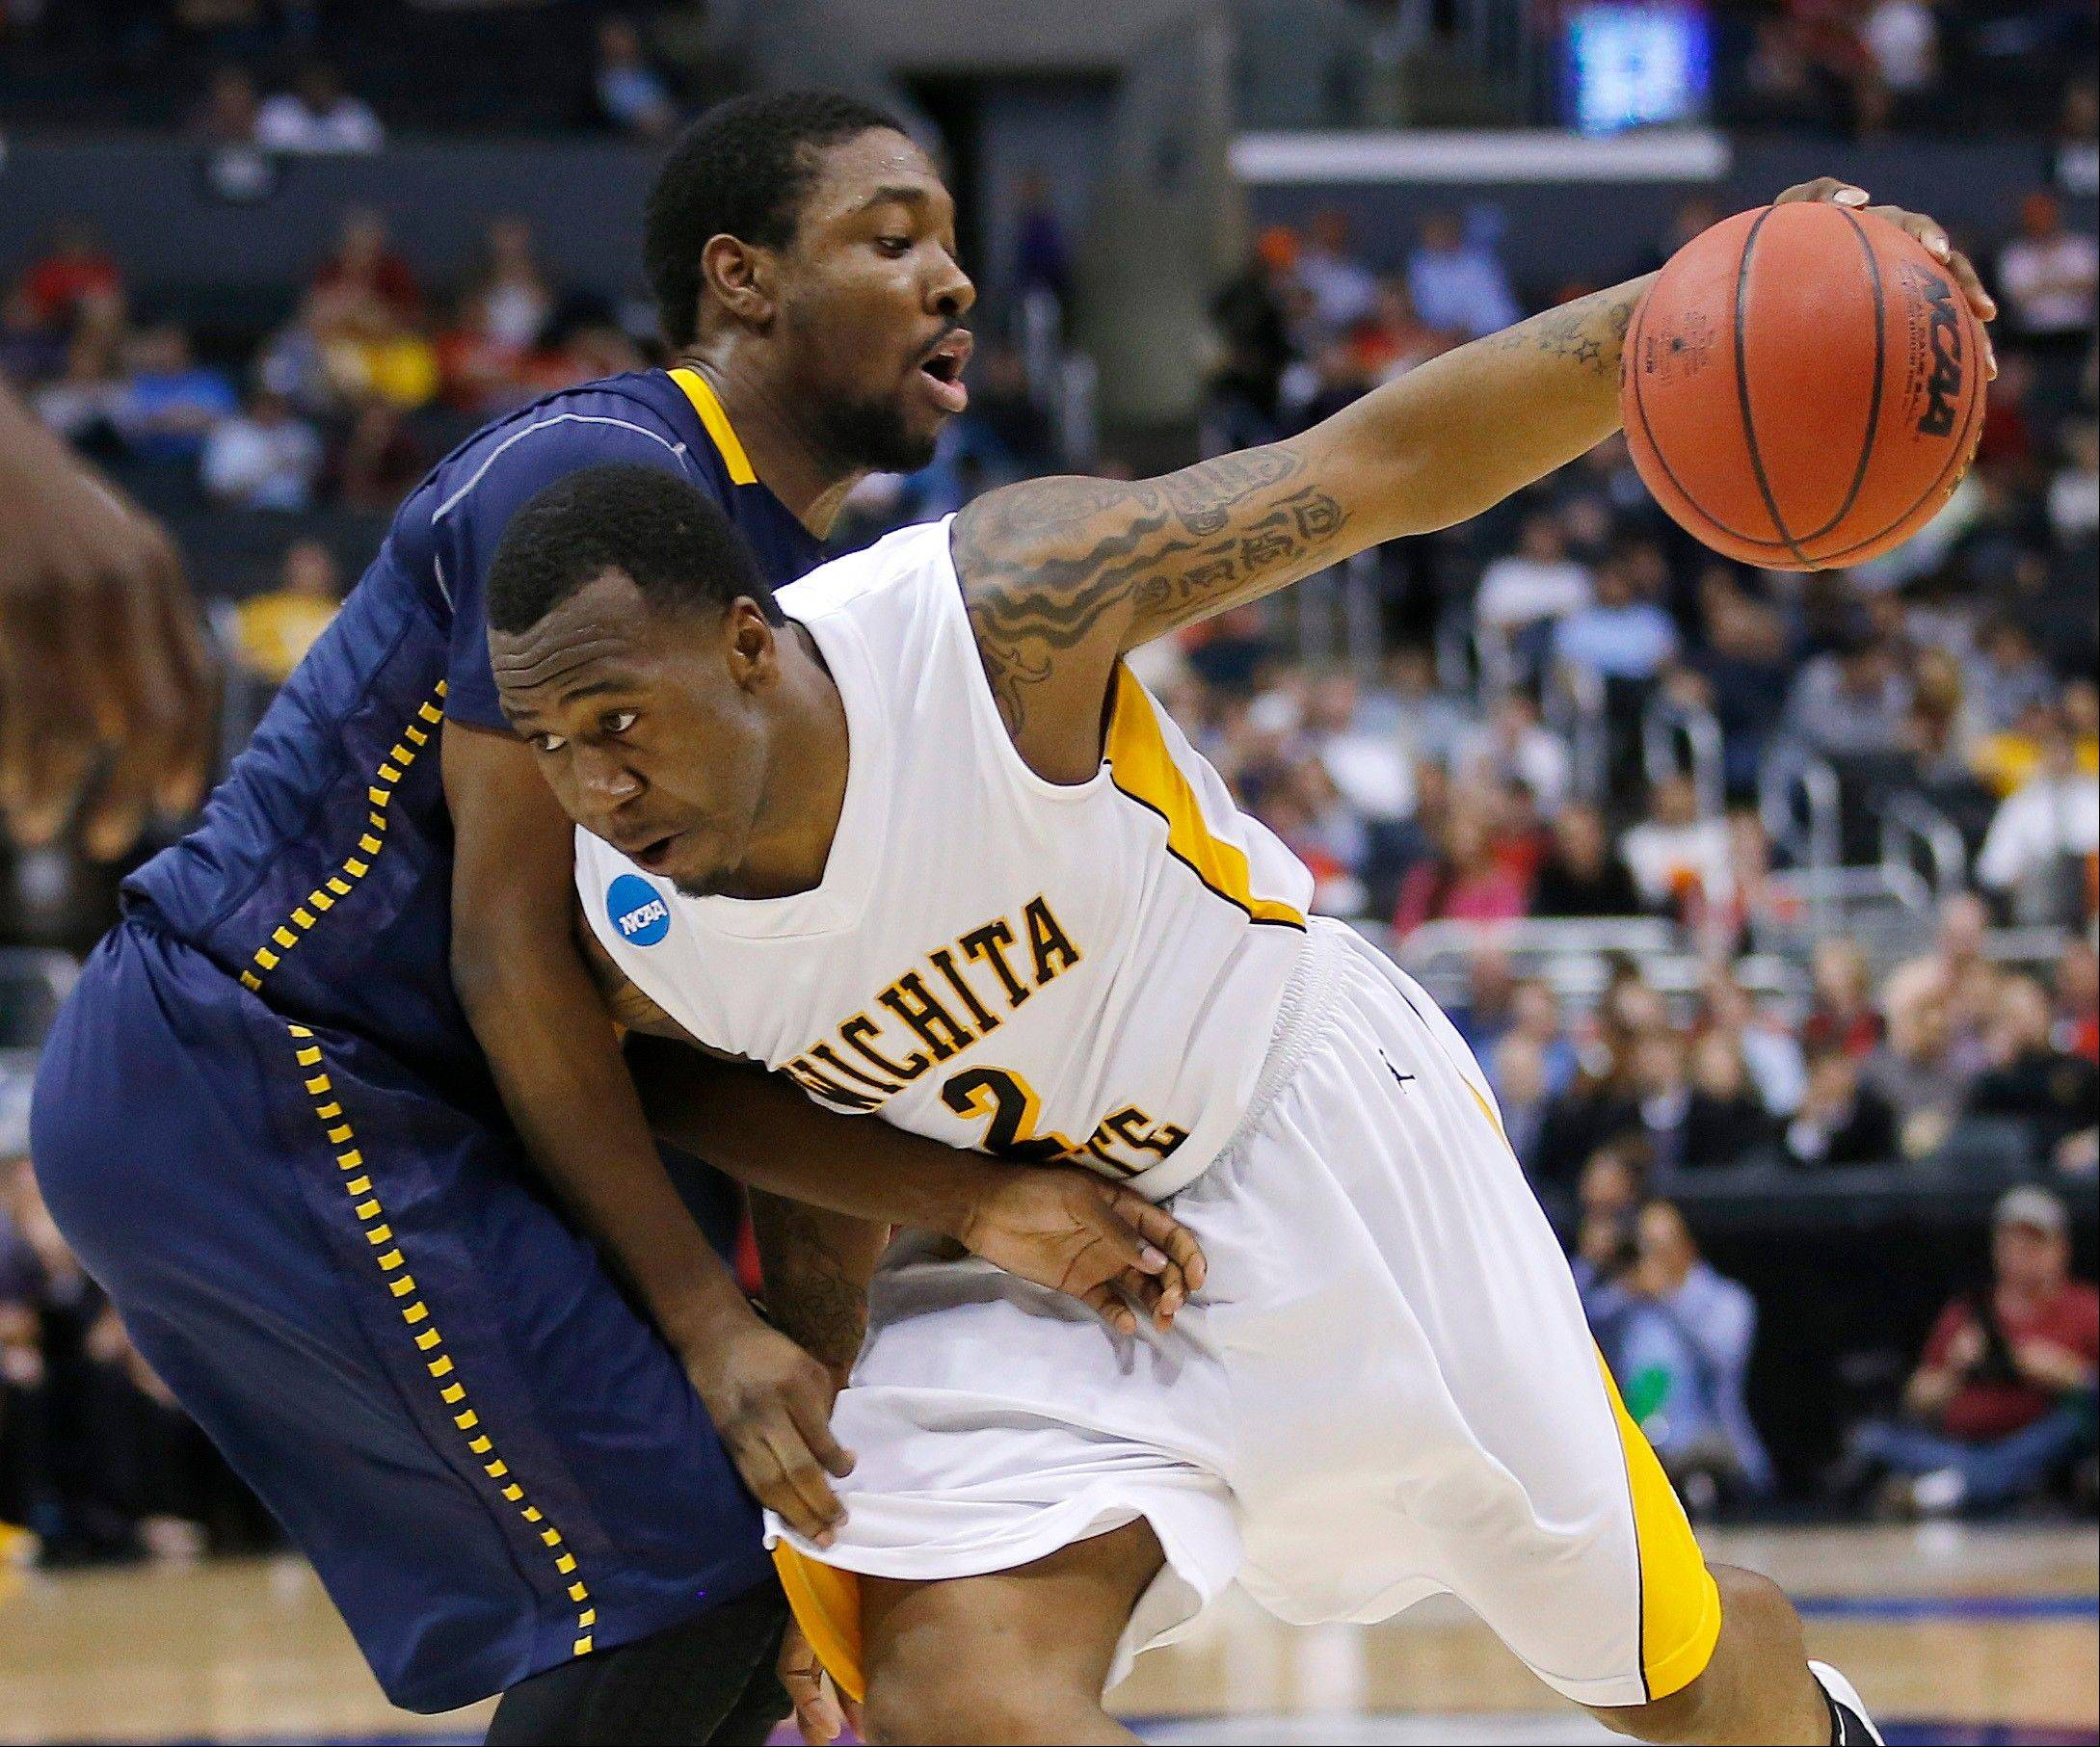 La Salle guard Sam Mills, left, defends Wichita State guard Malcolm Armstead during the second half of a West Regional semifinal in the NCAA men's college basketball tournament, Thursday, March 28, 2013, in Los Angeles.